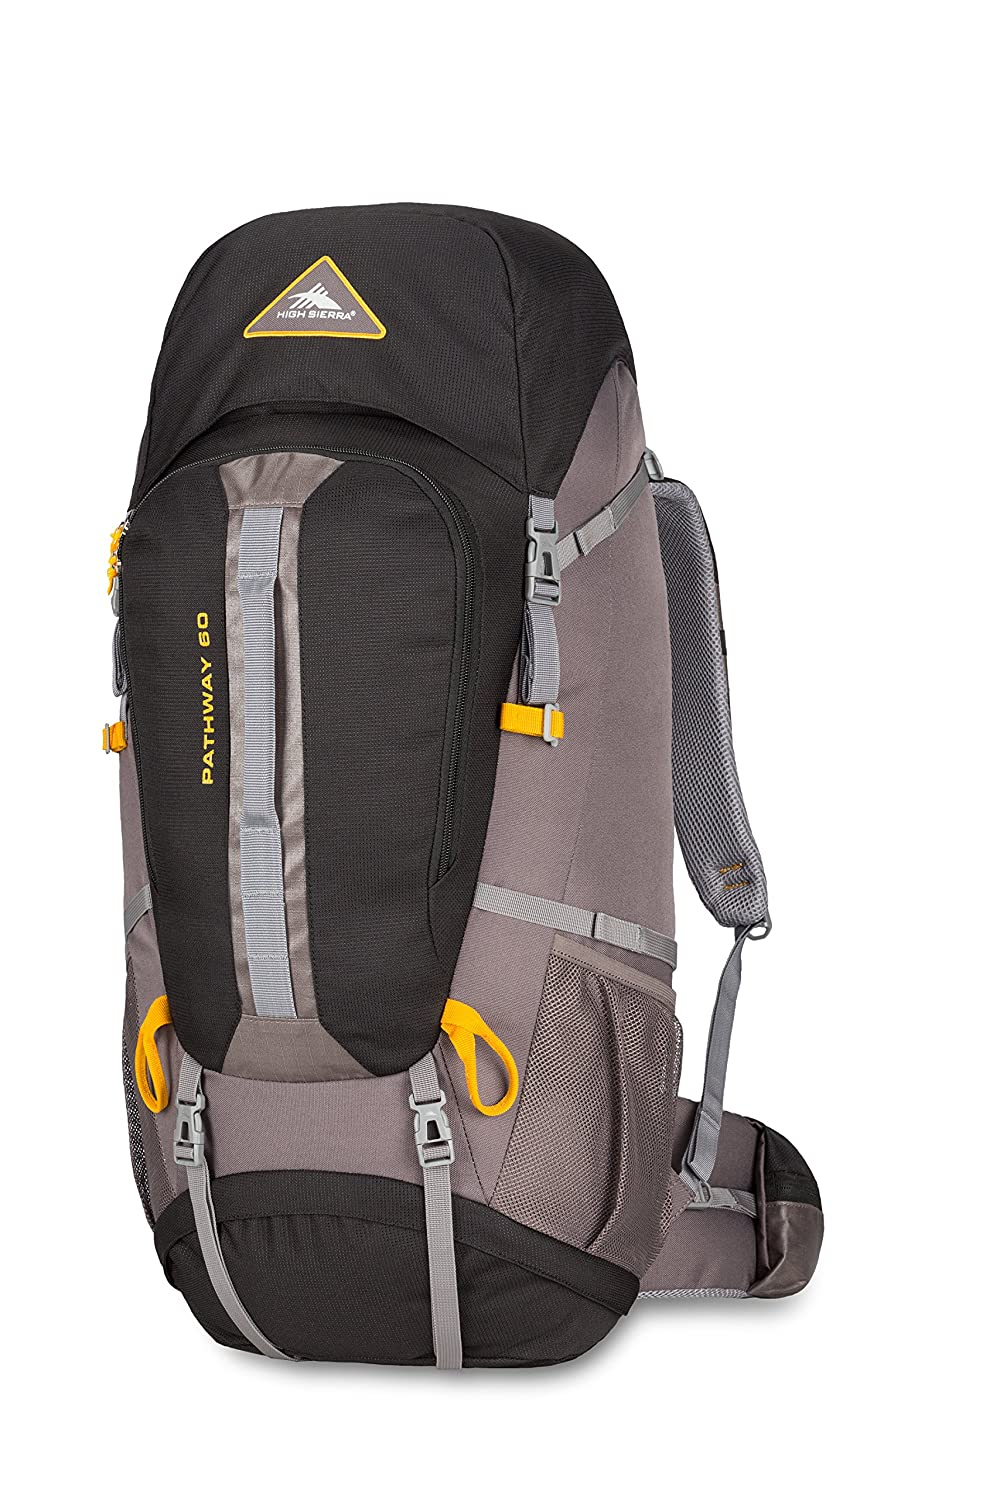 High Sierra 79548-5745 Pathway 60 l Frame Daypack, Black/State/Gold, Checked - Large Samsonite Corporation - CA